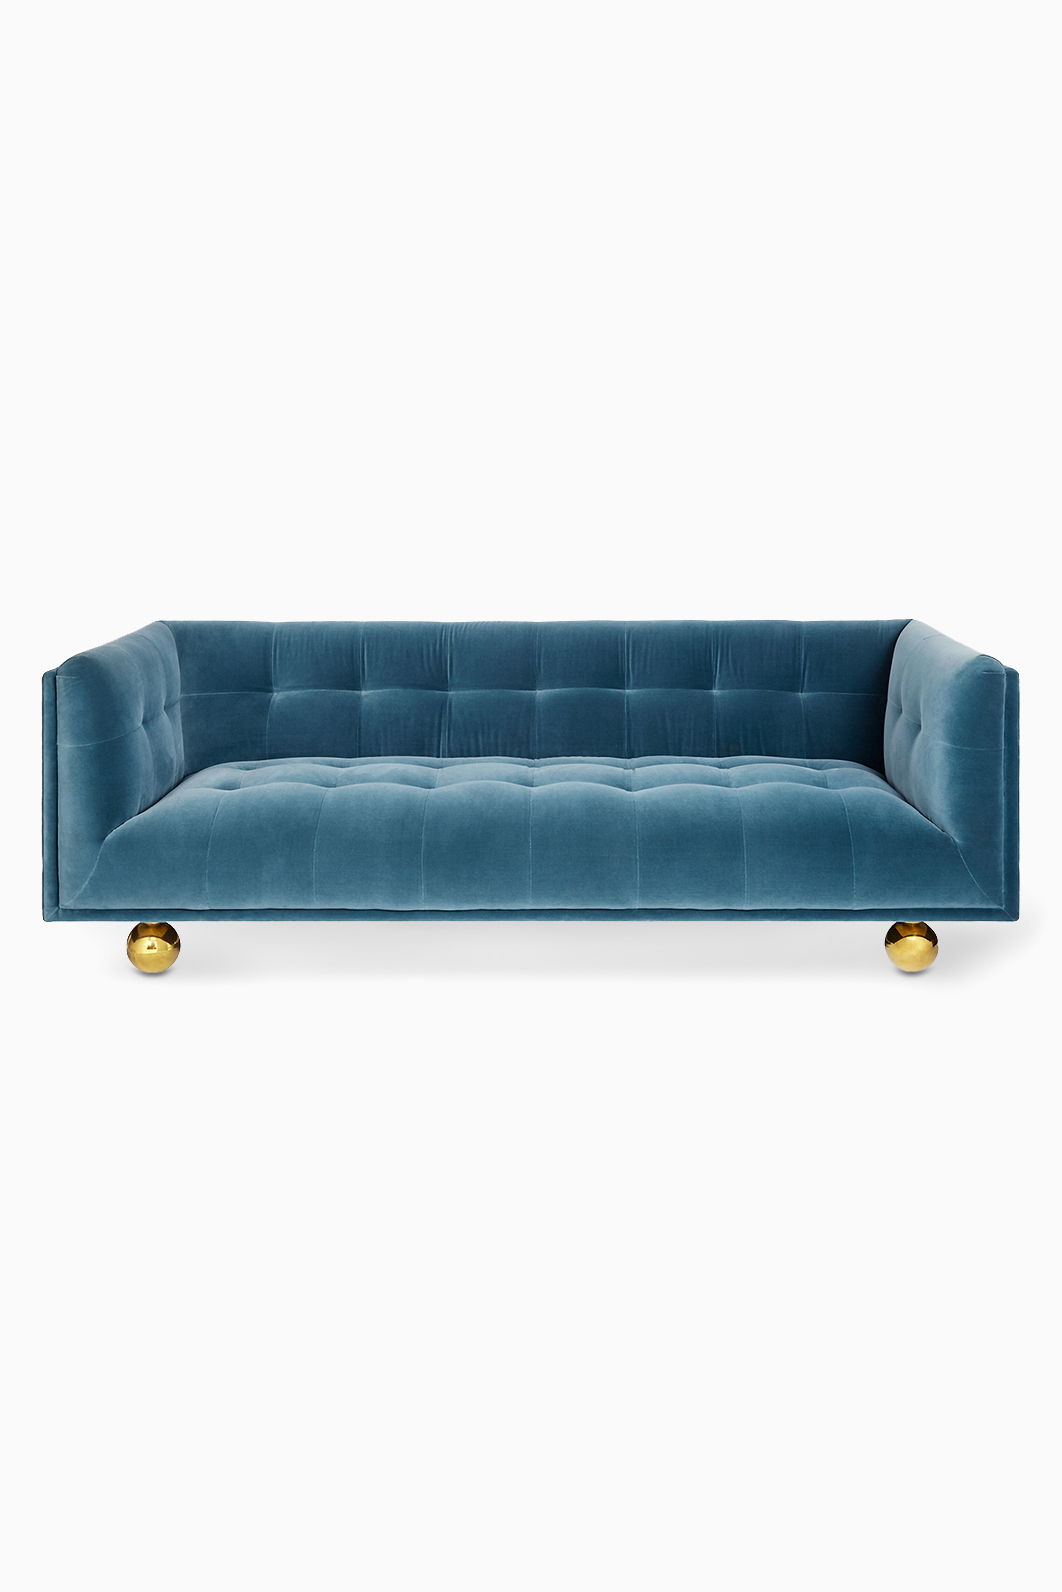 Couch Petrol Shop Jonathan Adler Blue Lisbon Petrol Velvet Claridge Sofa For